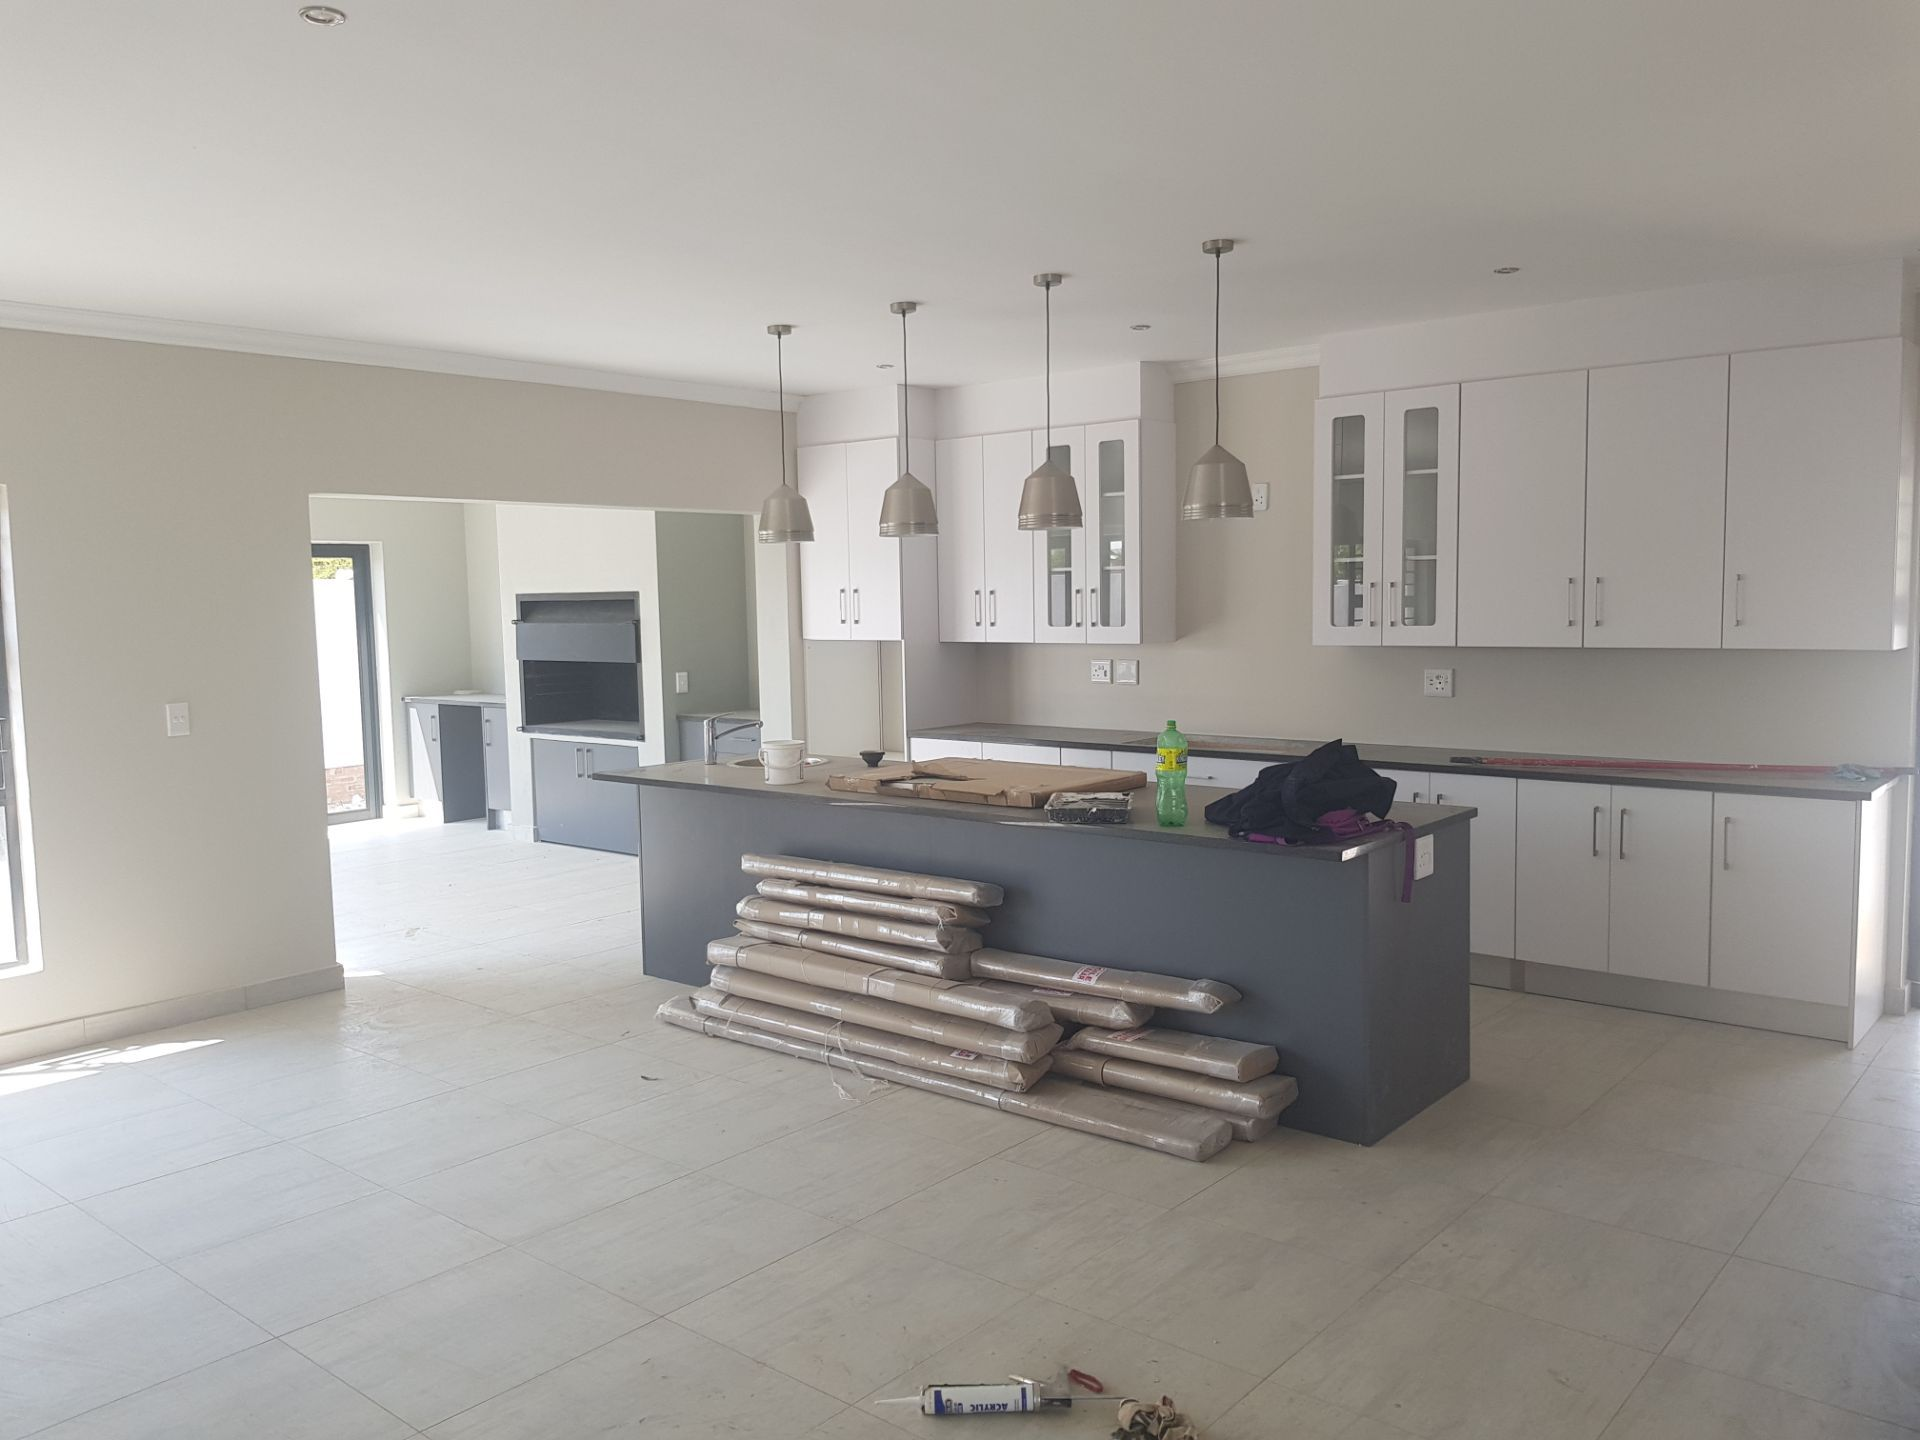 House in Lifestyle Estate - 20190920_130006.jpg